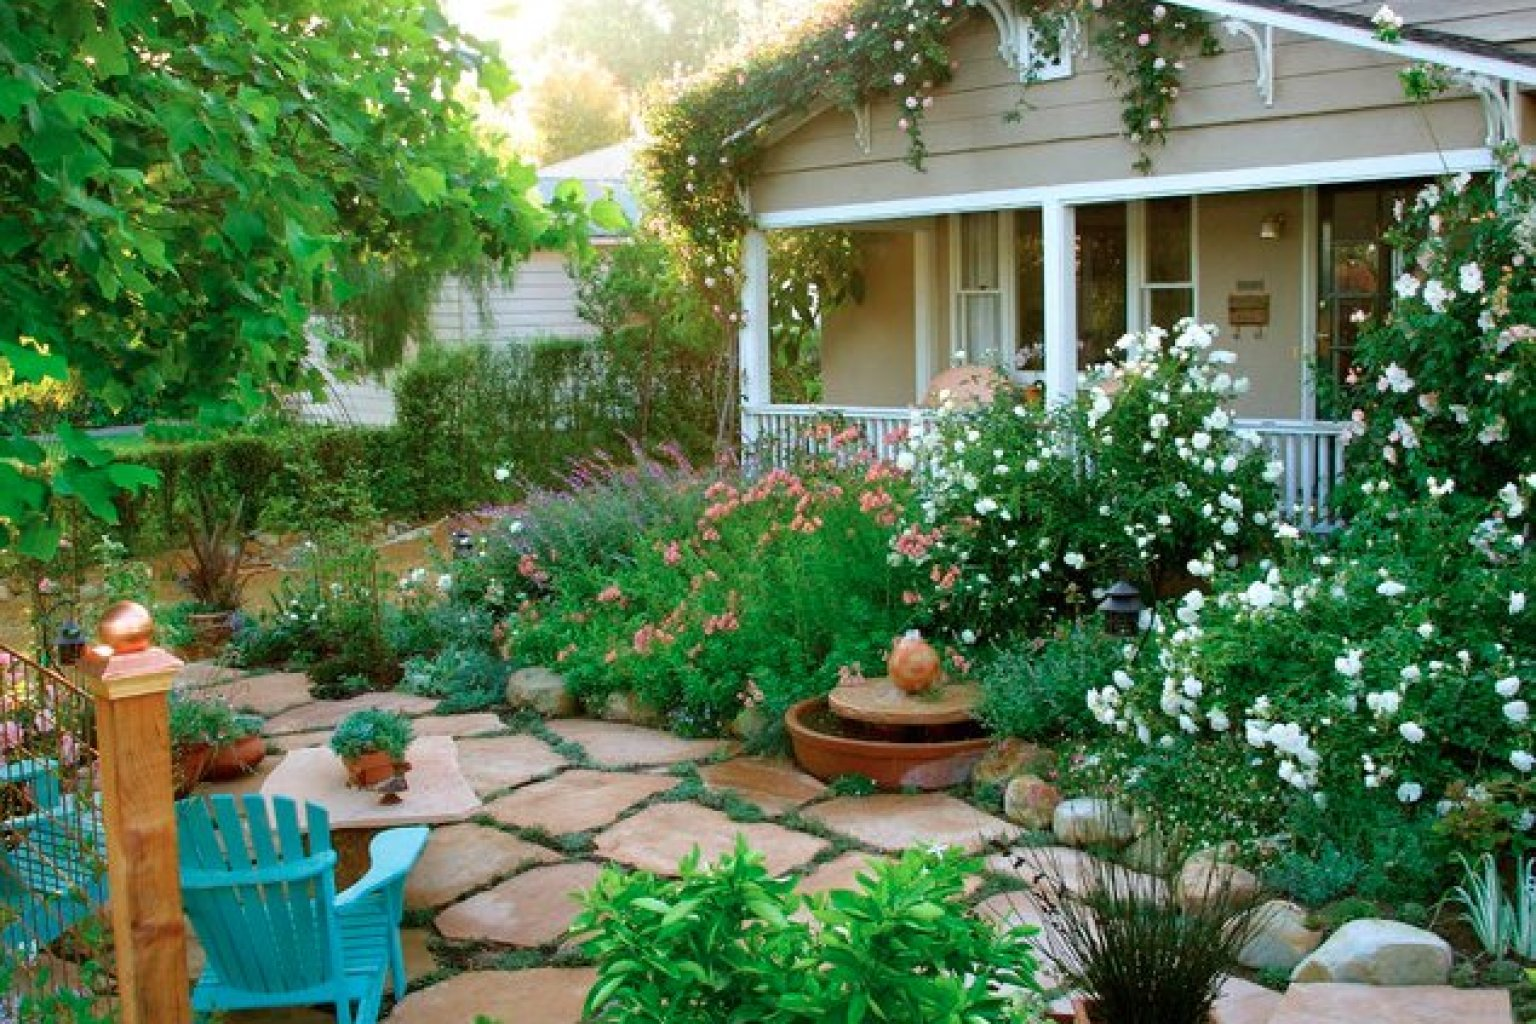 10 cottage gardens that are just too charming for words photos huffpost - Front Yard Cottage Garden Ideas